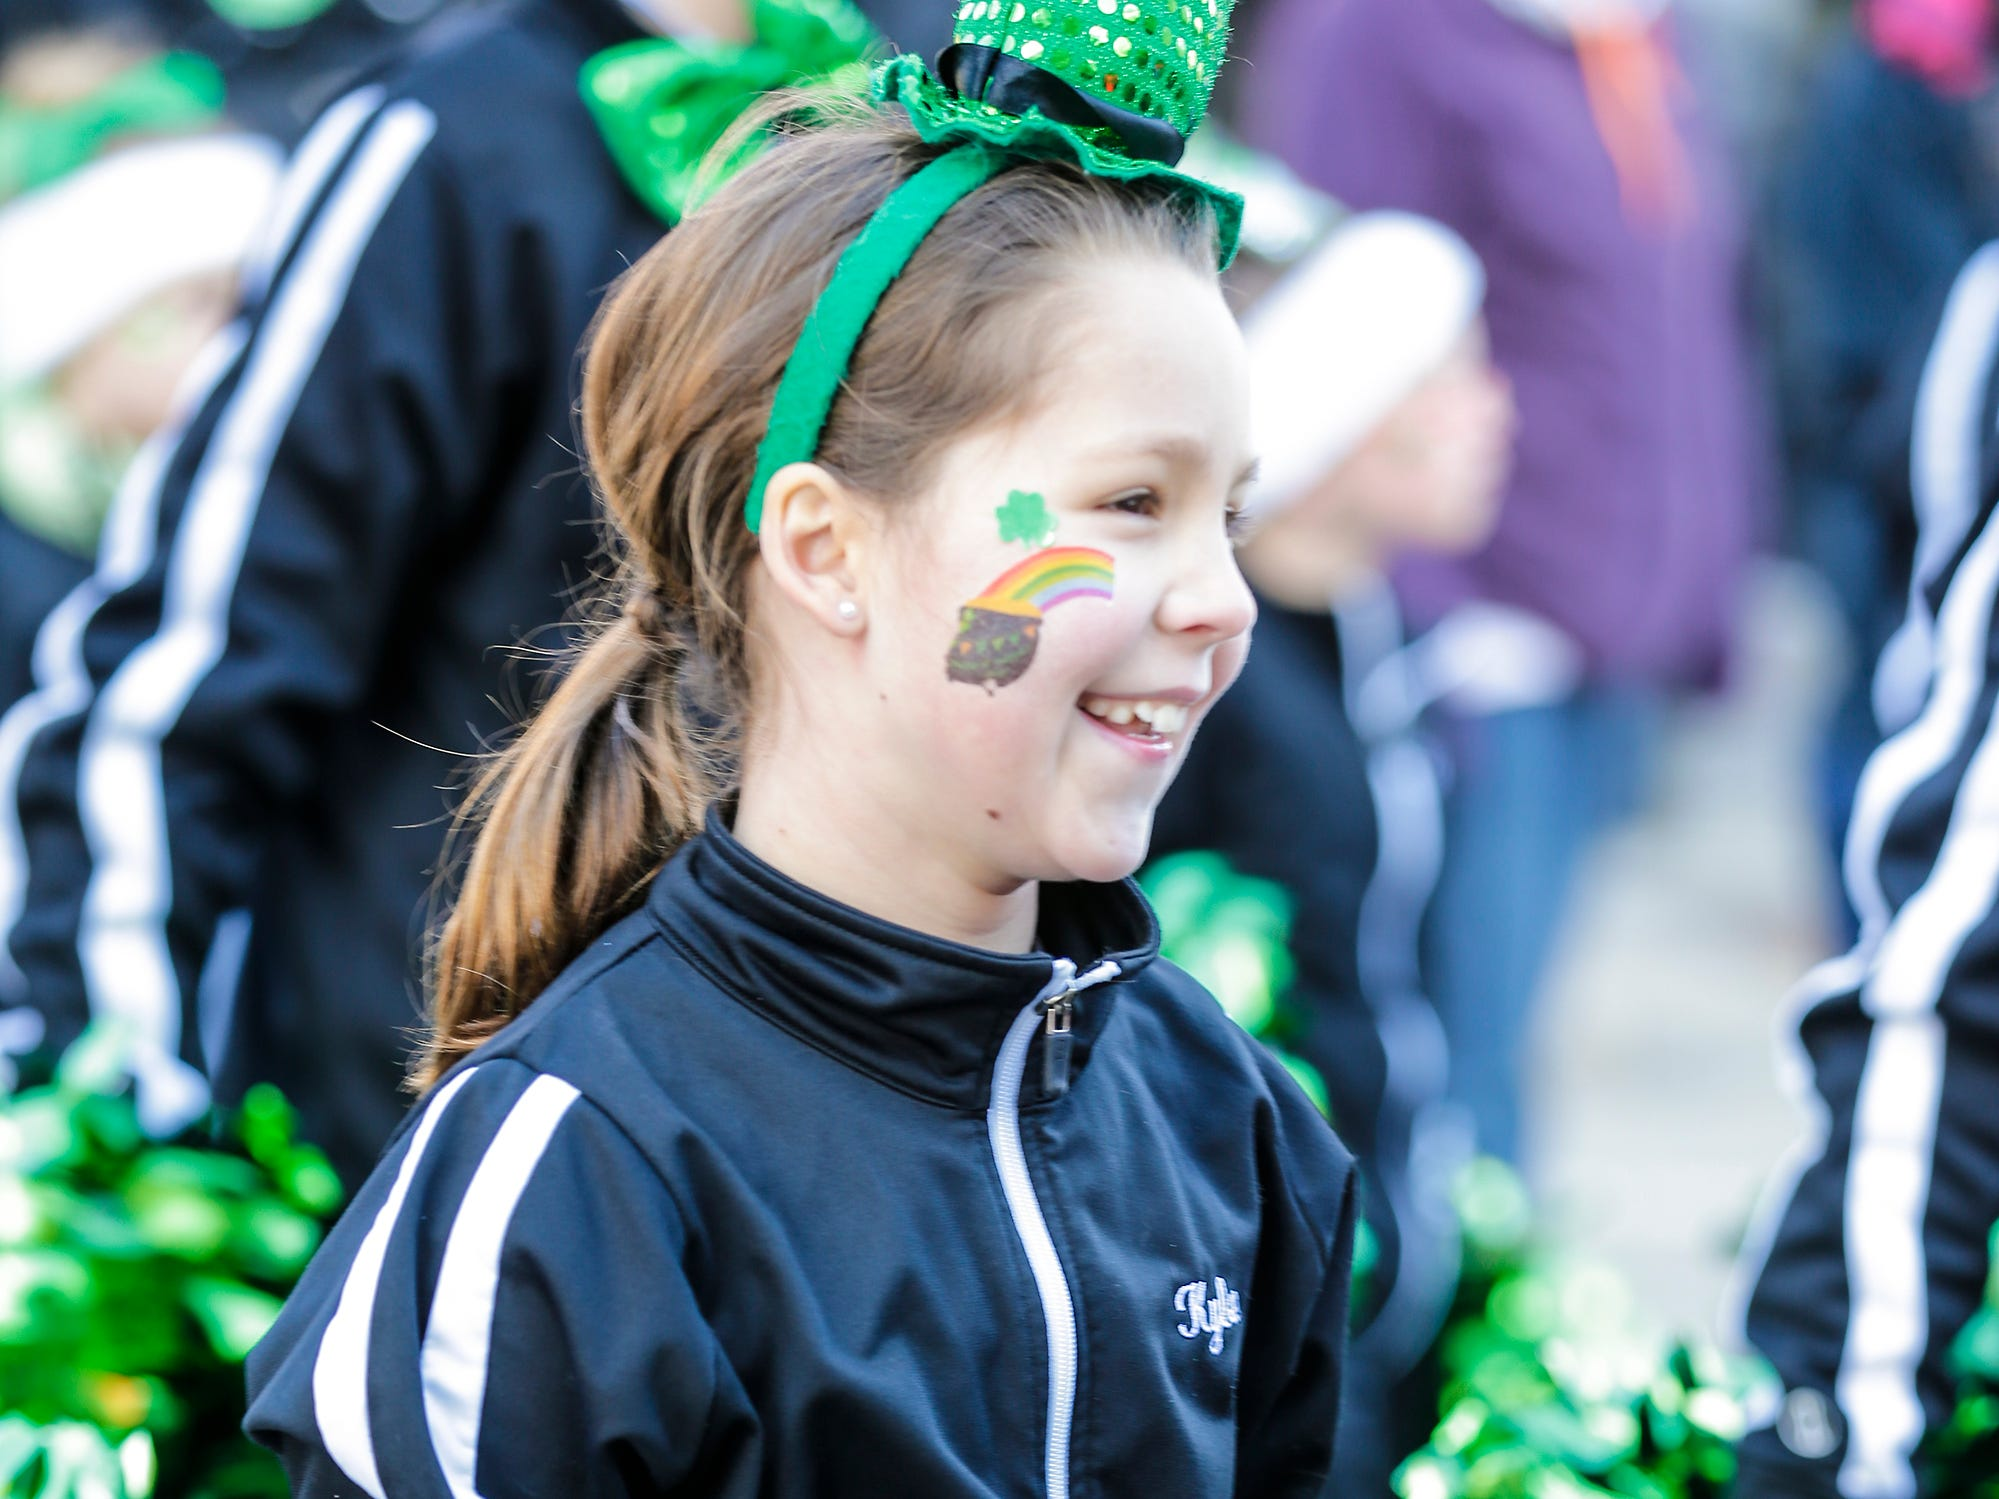 Kylee Laurin of Fond du Lac's Studio Of Music participated in the City of Fond du Lac St. Patrick's Day Parade Saturday, March 16, 2019 on Main Street in downtown Fond du Lac. Hundreds of people lined the street to watch over 50 parade participants. Doug Raflik/USA TODAY NETWORK-Wisconsin